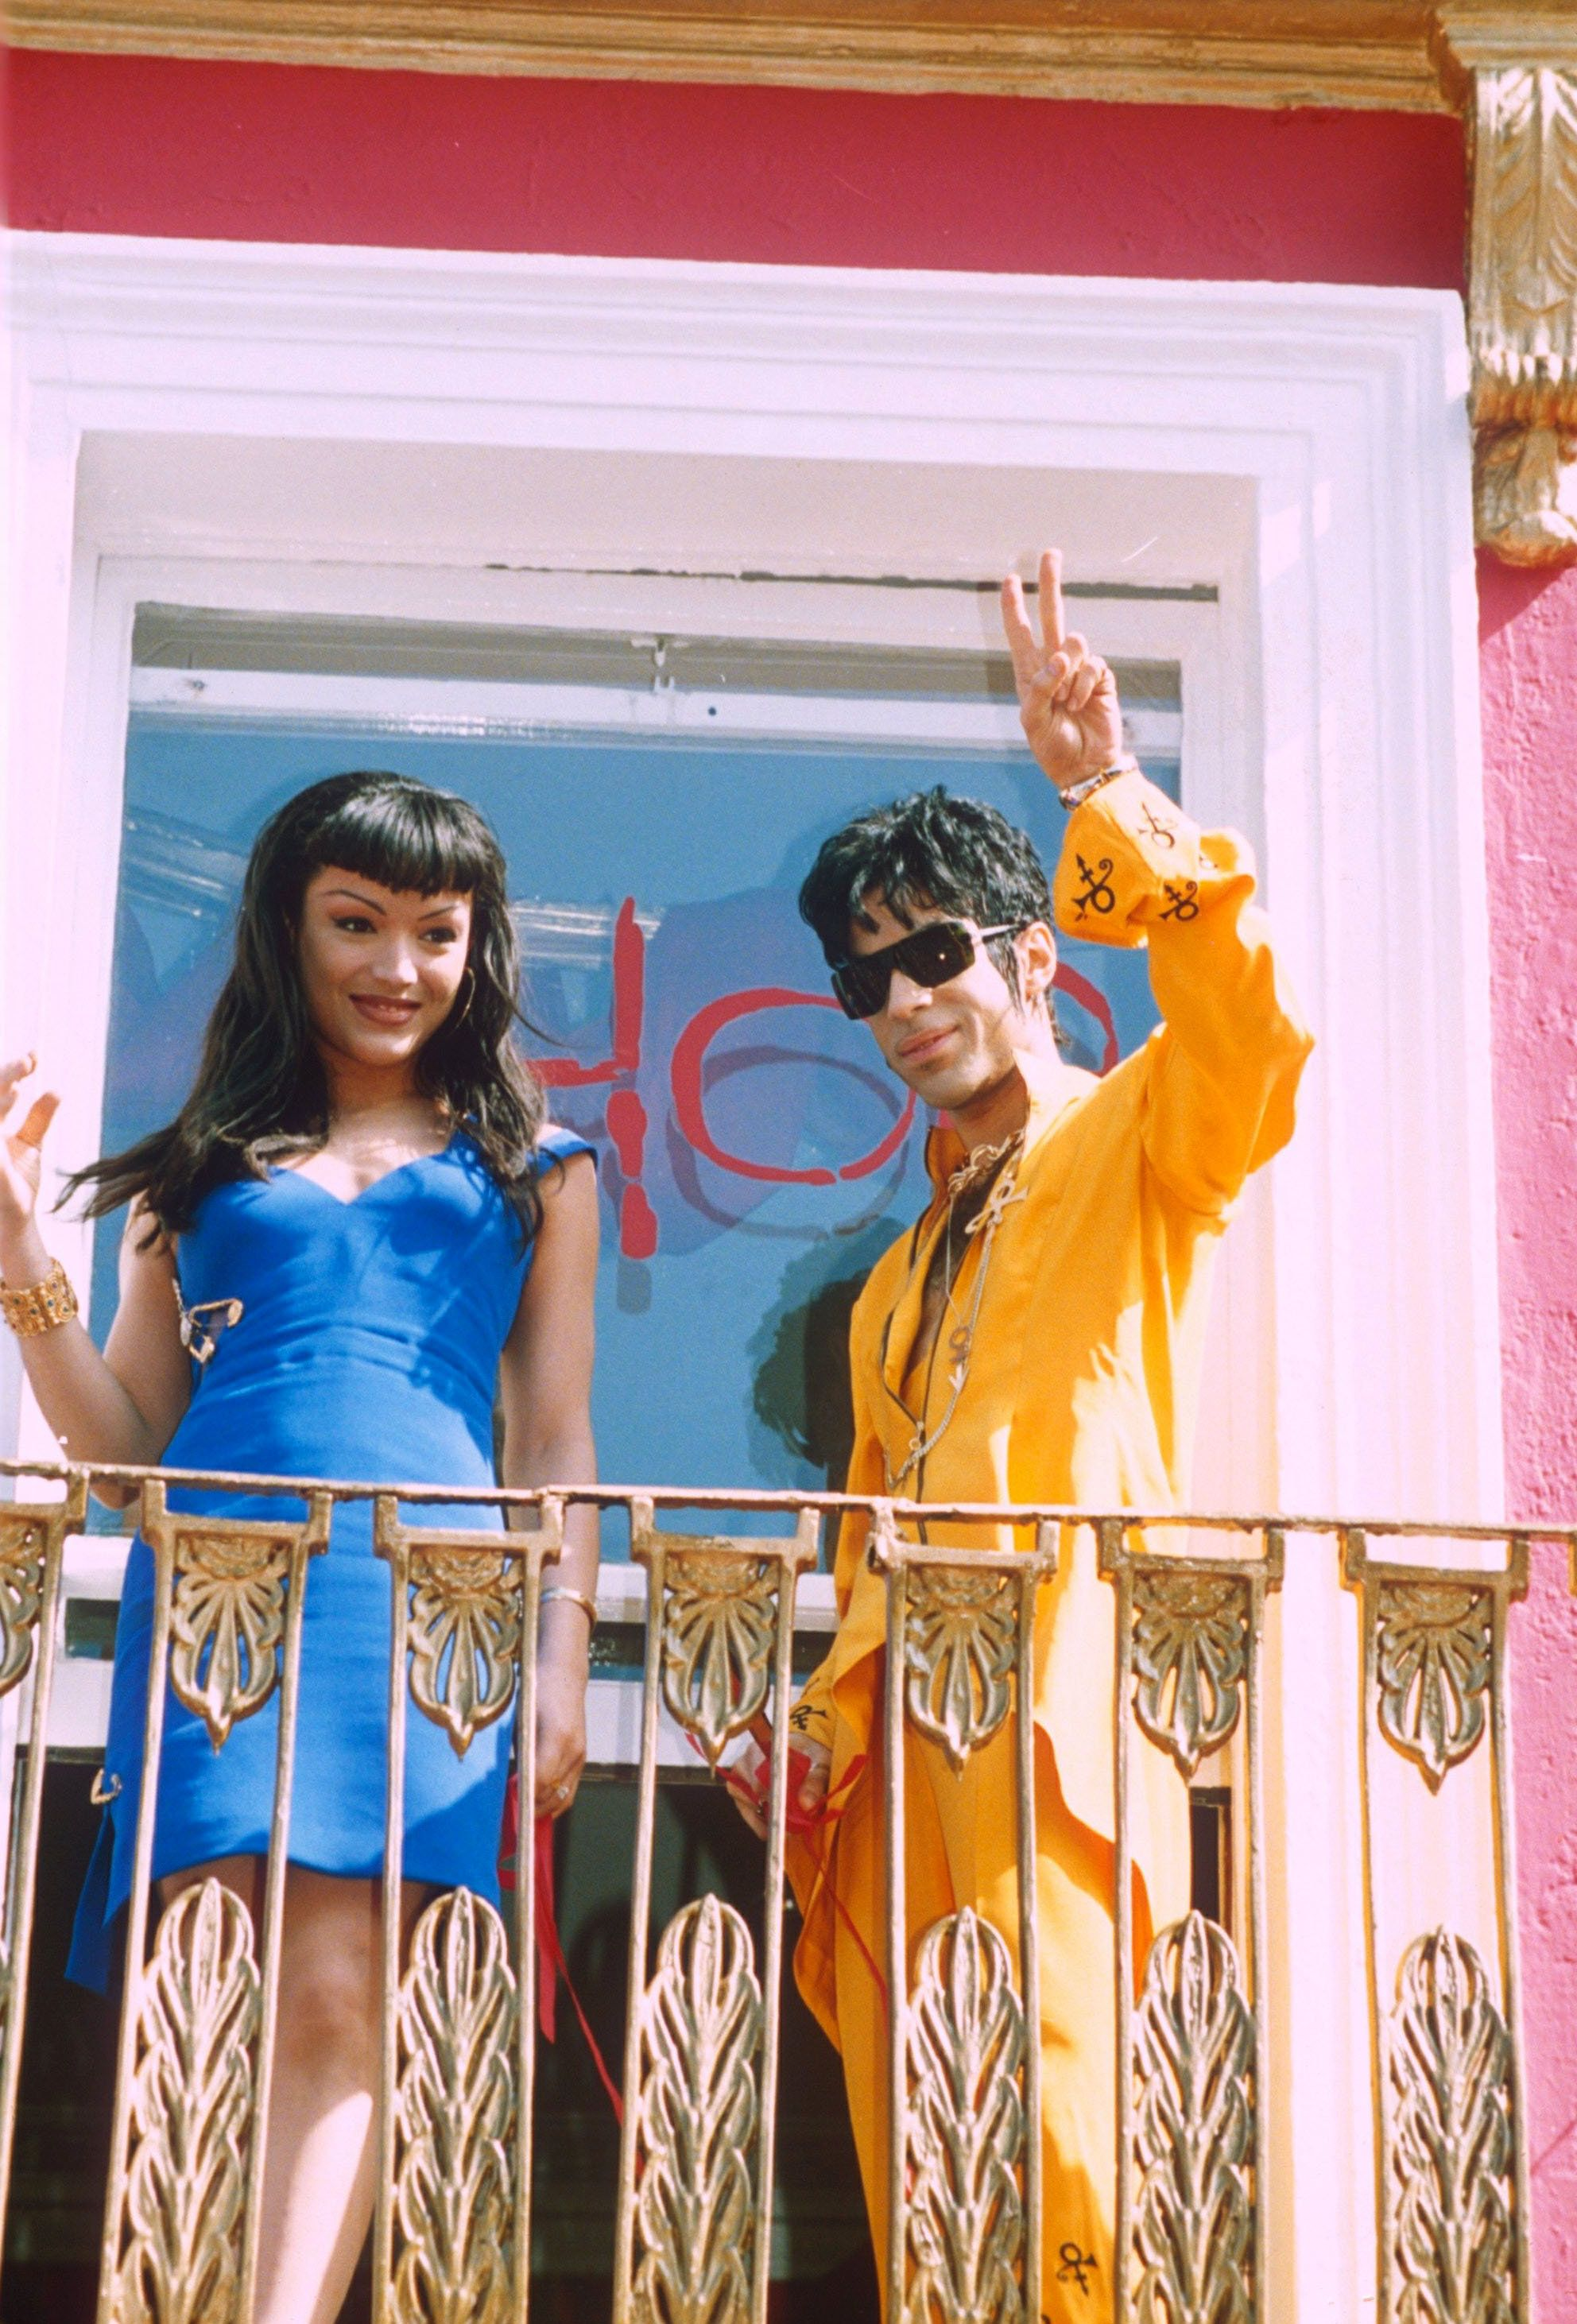 Prince Opening His Shop, Camden, London, Britain - 1994, Mayte Garcia And Prince (Photo by Brian Rasic/Getty Images)